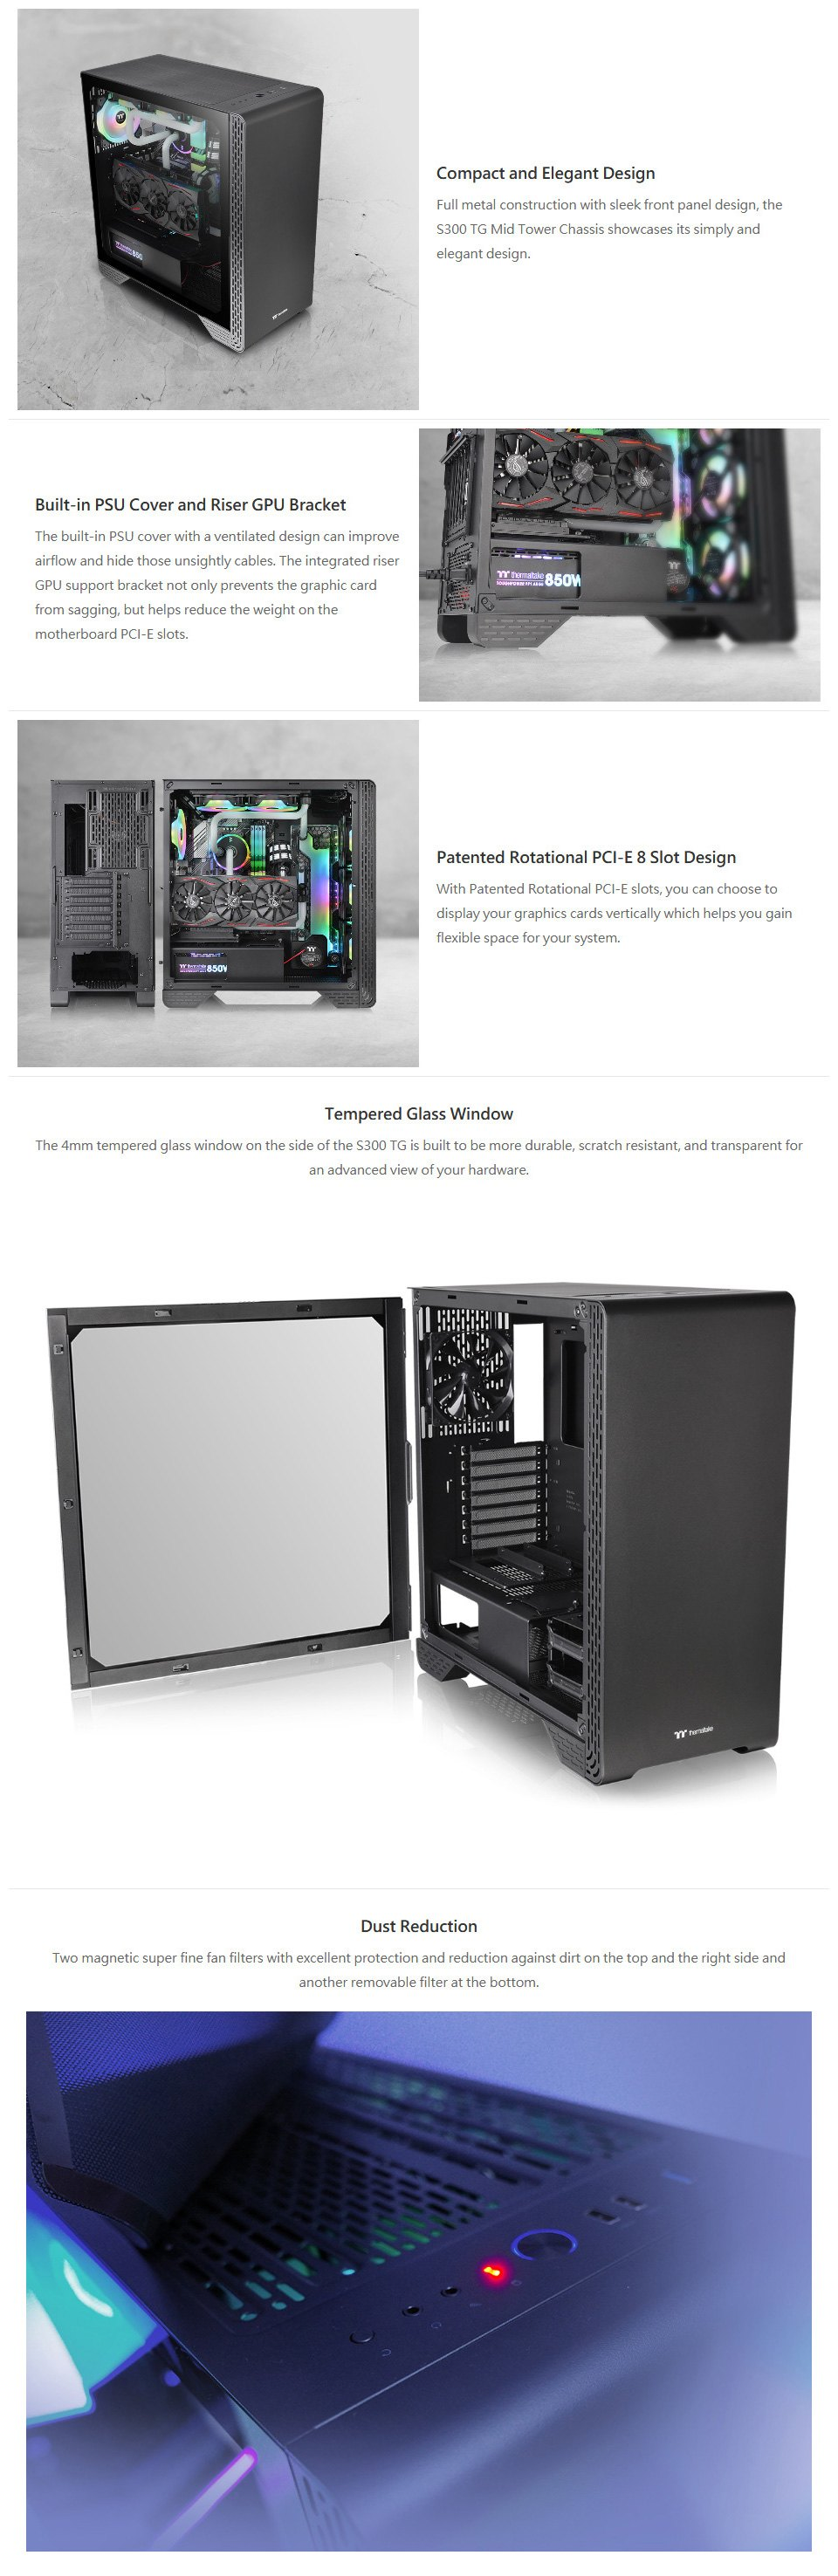 Thermaltake S300 Tempered Glass Mid-Tower Case Snow Edition features 2